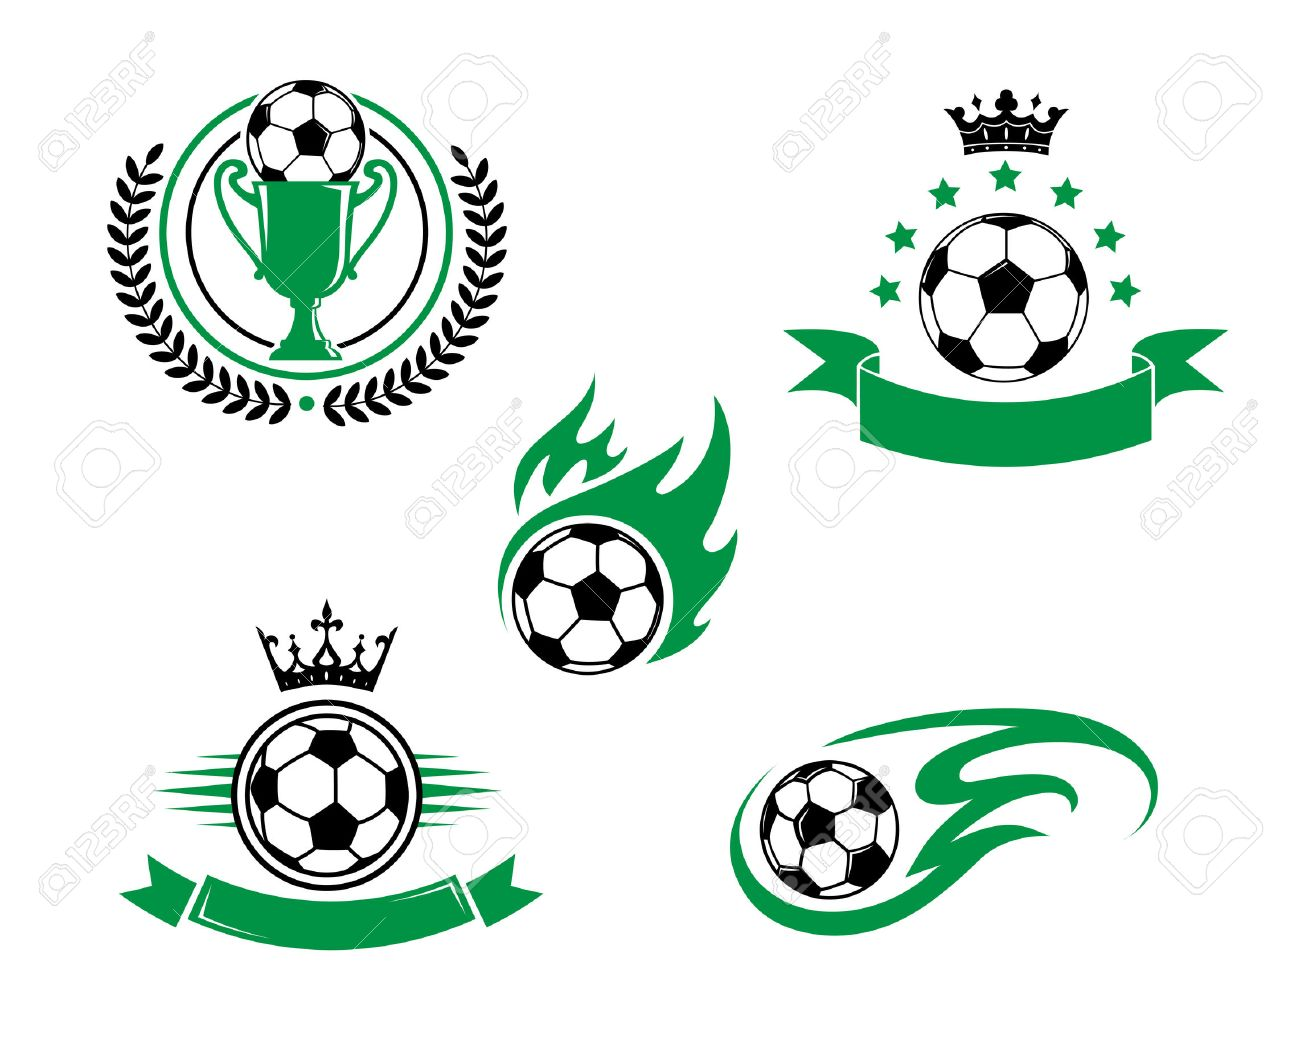 Football and soccer emblem or logo with ball, cup, laurel wreath ribbon and crown. Suitable for sporting and recreation design - 31016949